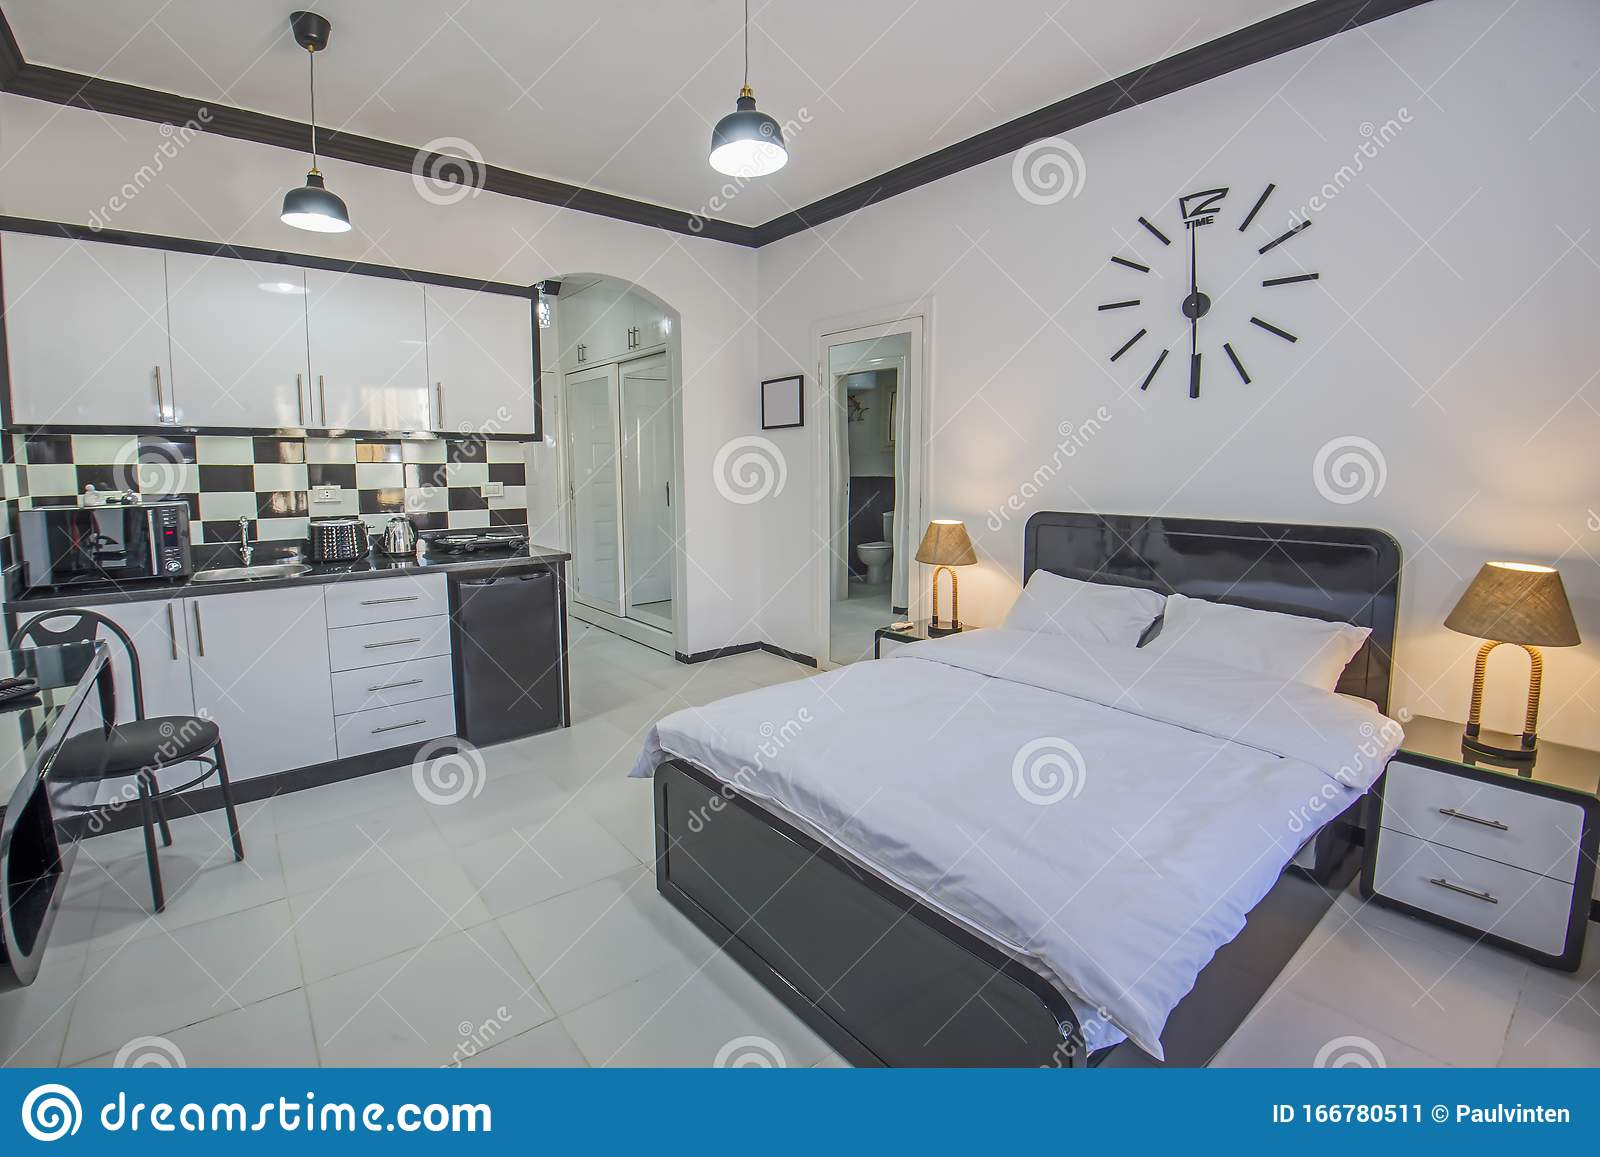 Interior Design Of Bedroom In Studio Apartment With Kitchen Stock Image Image Of Contemporary Furnishing 166780511,House Interior Designs Ideas